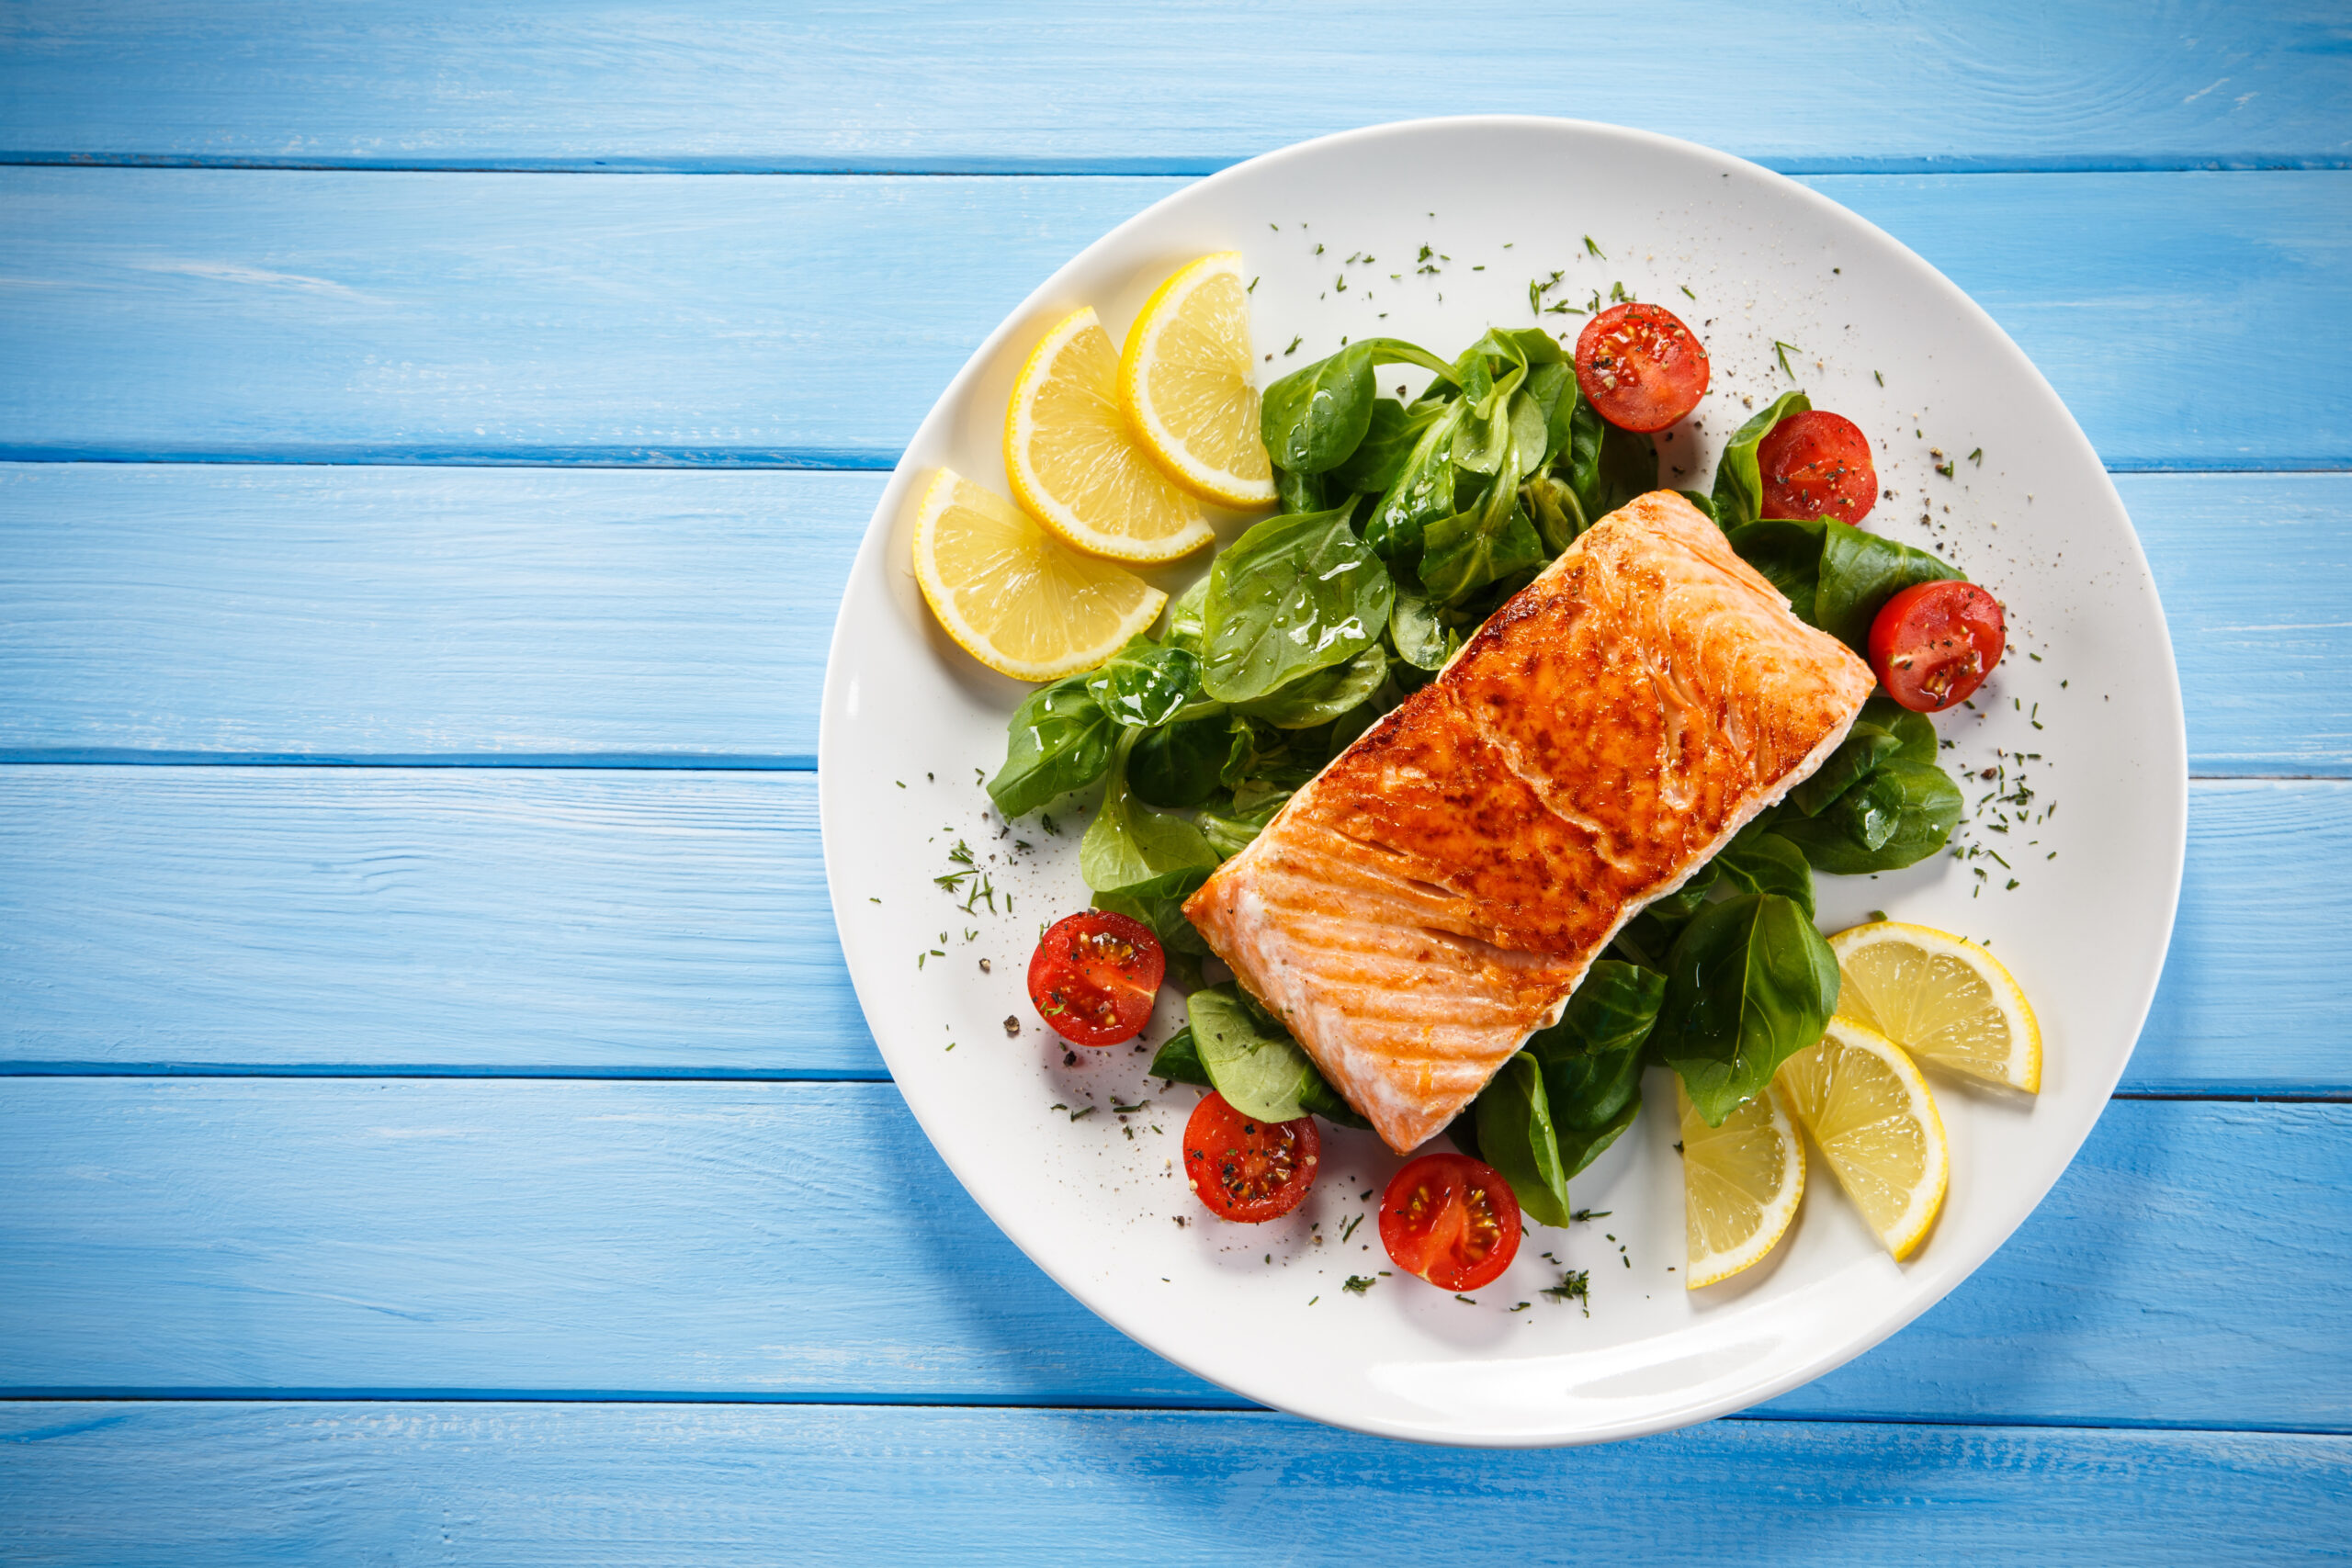 Plate-of-salmon-with-omega-3-and-veggies